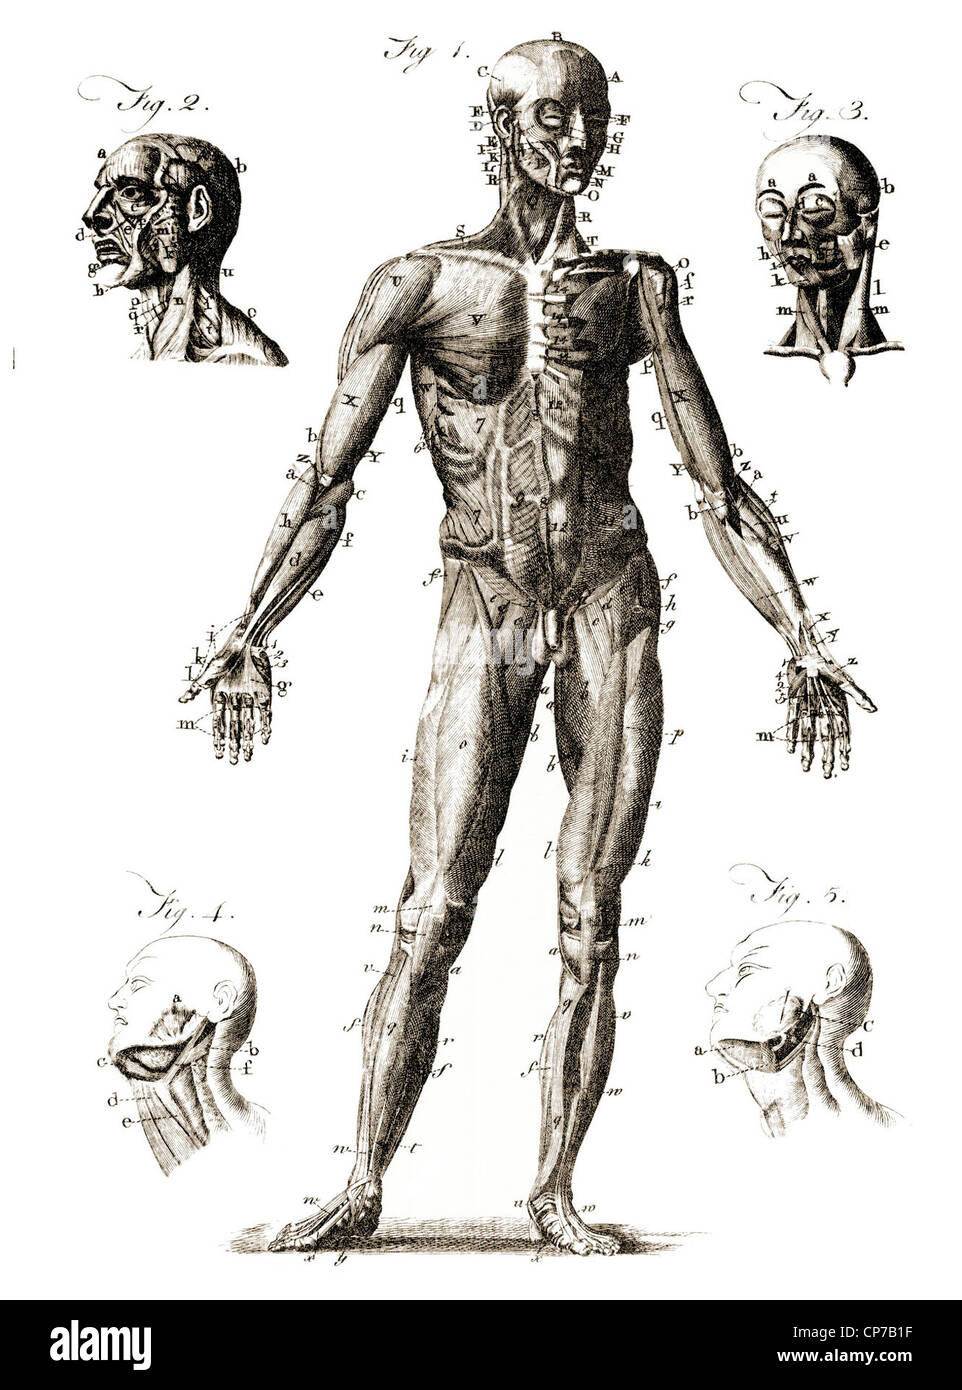 Historical Anatomy Stockfotos & Historical Anatomy Bilder - Alamy